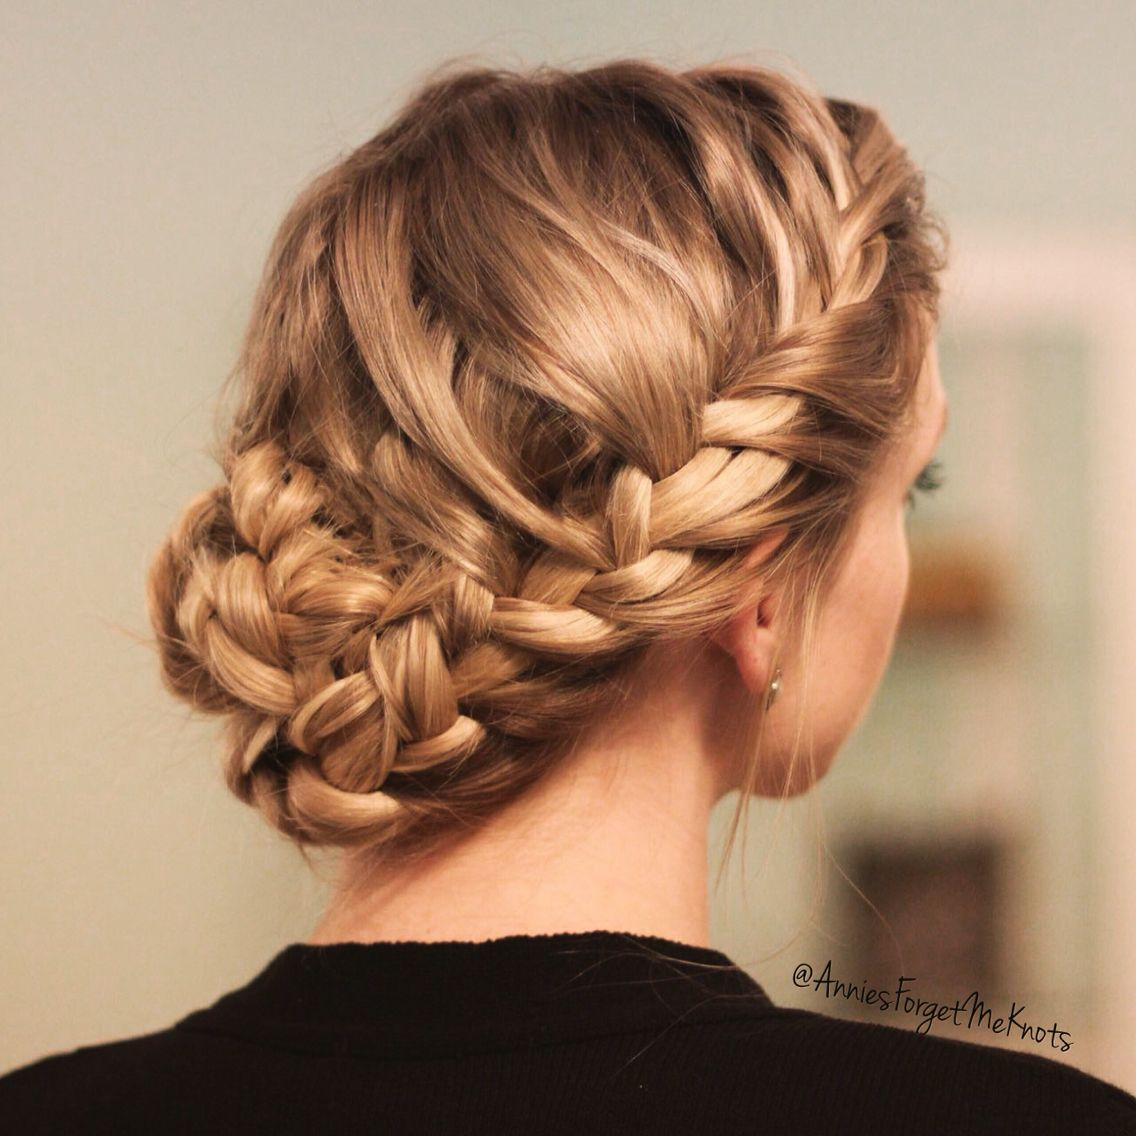 Loose French Braids On Both Sides Into A Braided Bun French